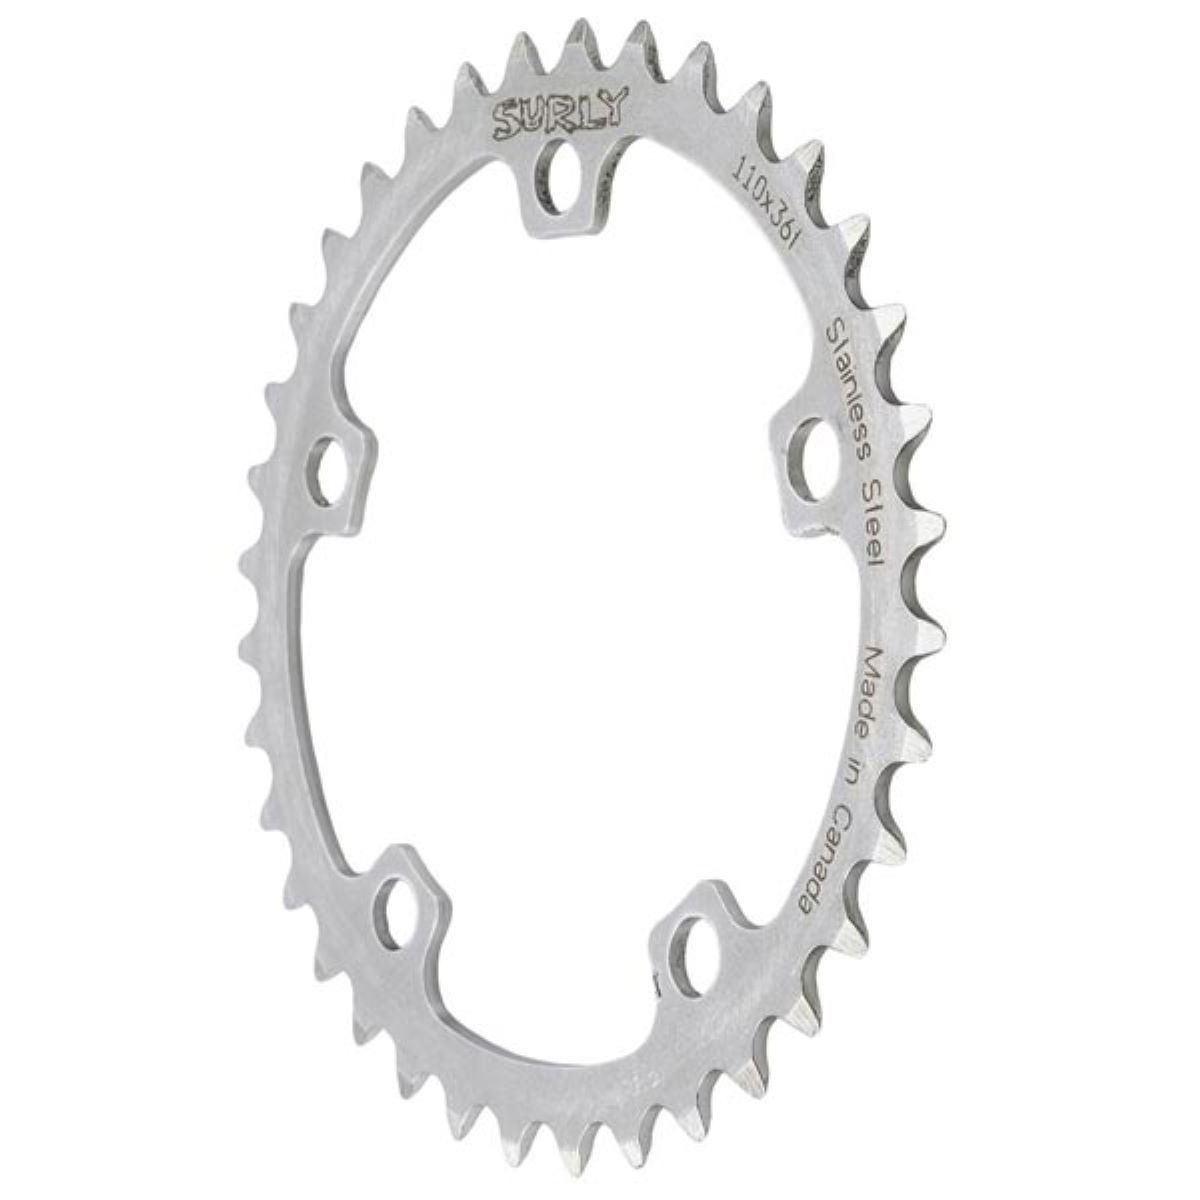 Surly Surly Stainless Steel 38T to 44T Chainring   Chain Rings